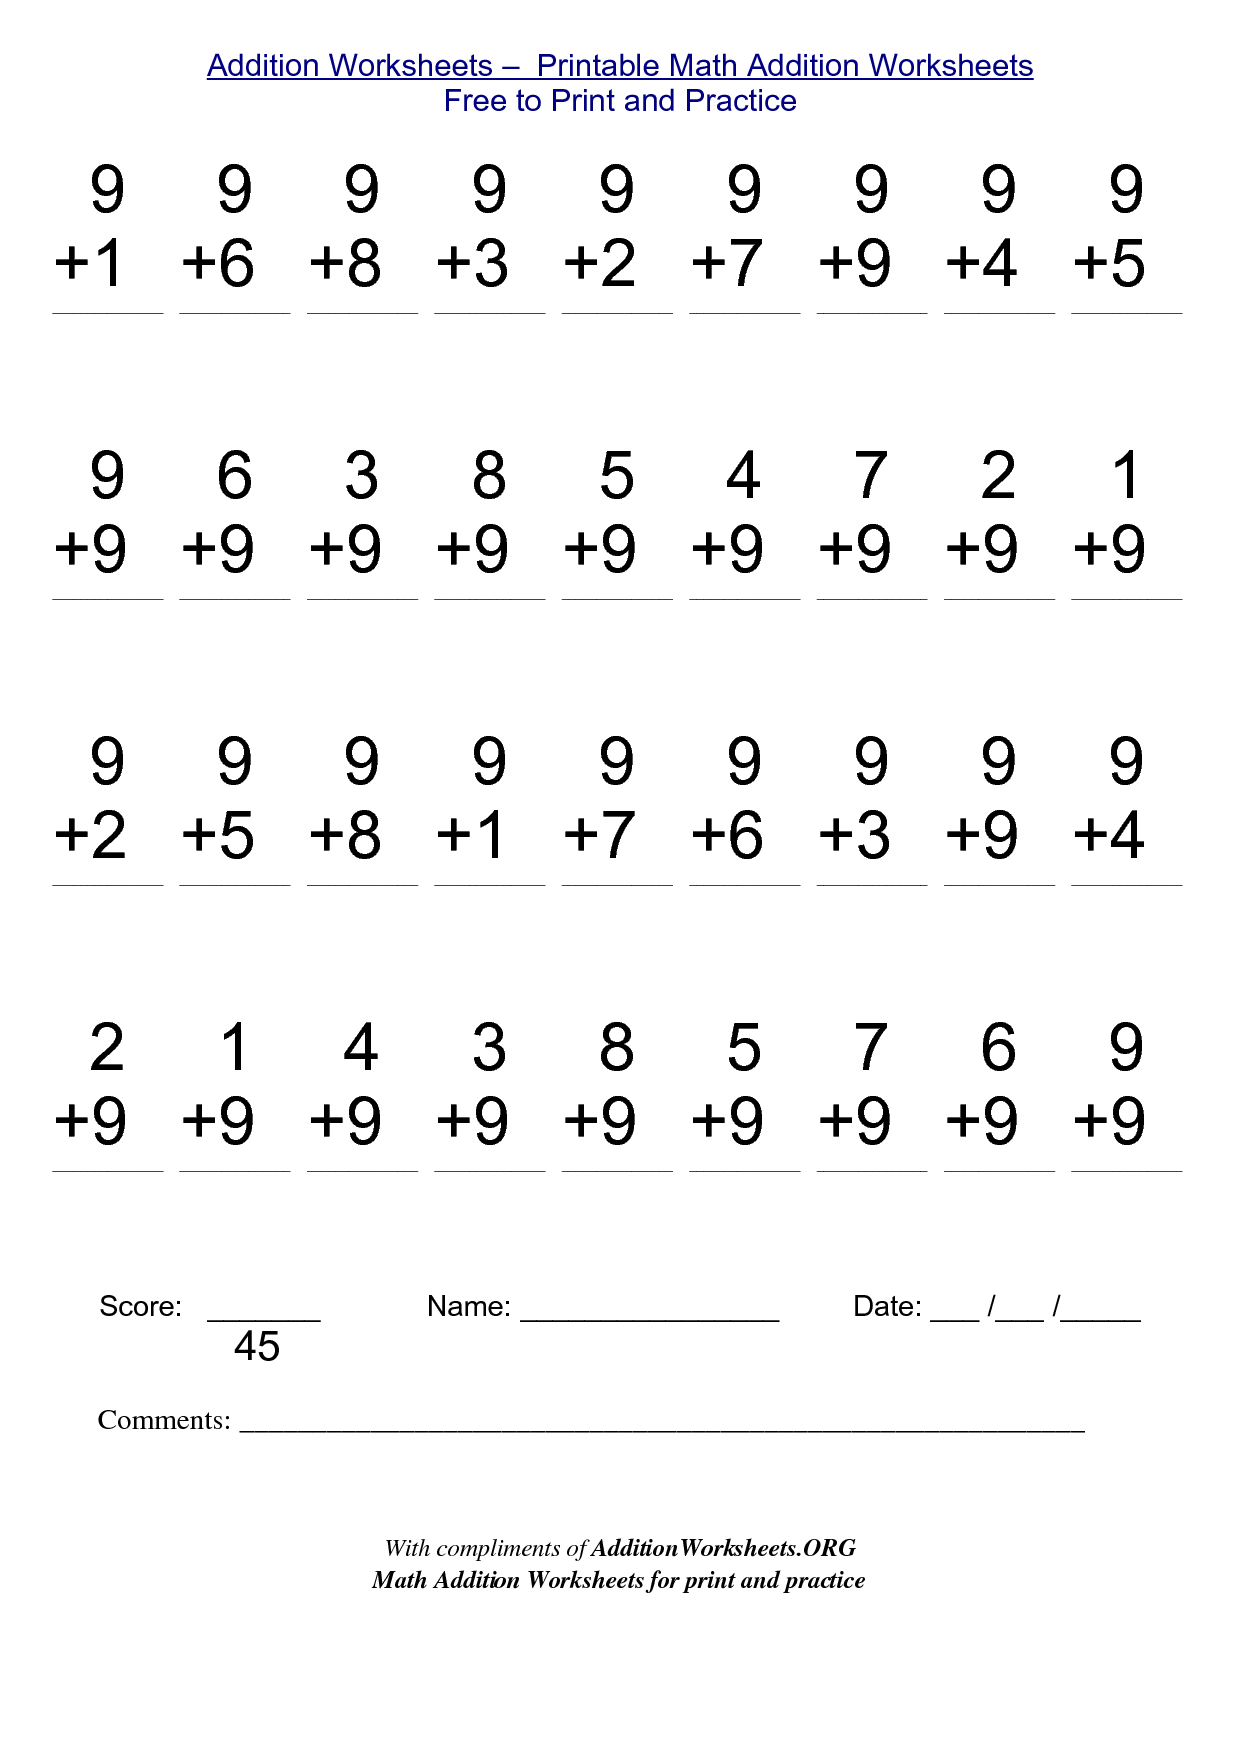 Math Worksheets for Free to Print Alot ME – Common Core Math Practice Worksheets